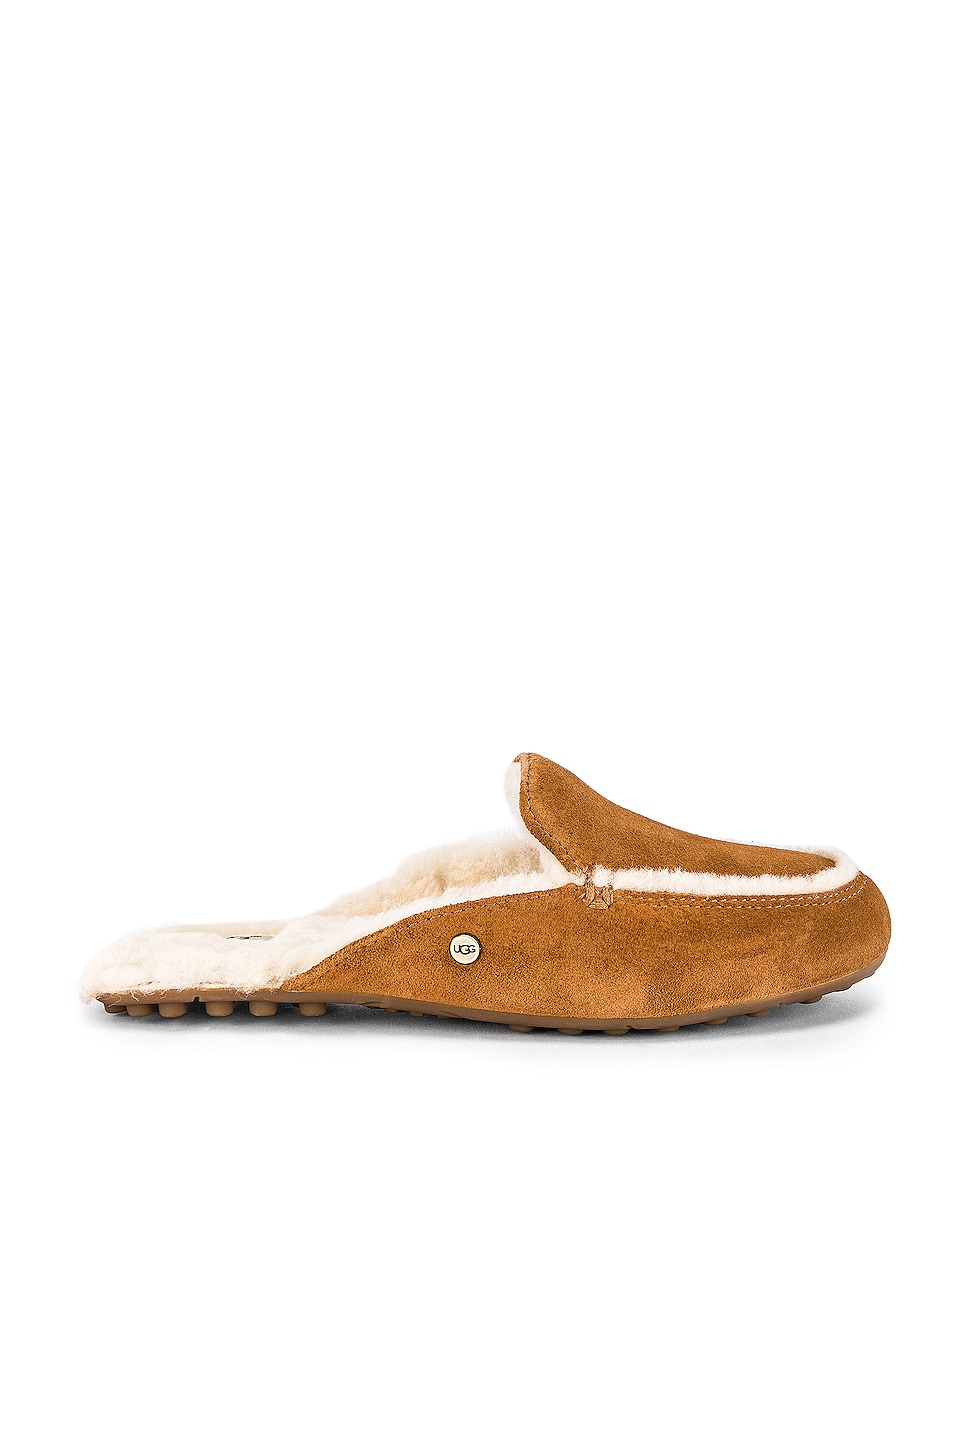 UGG Lane Slipper in Chestnut